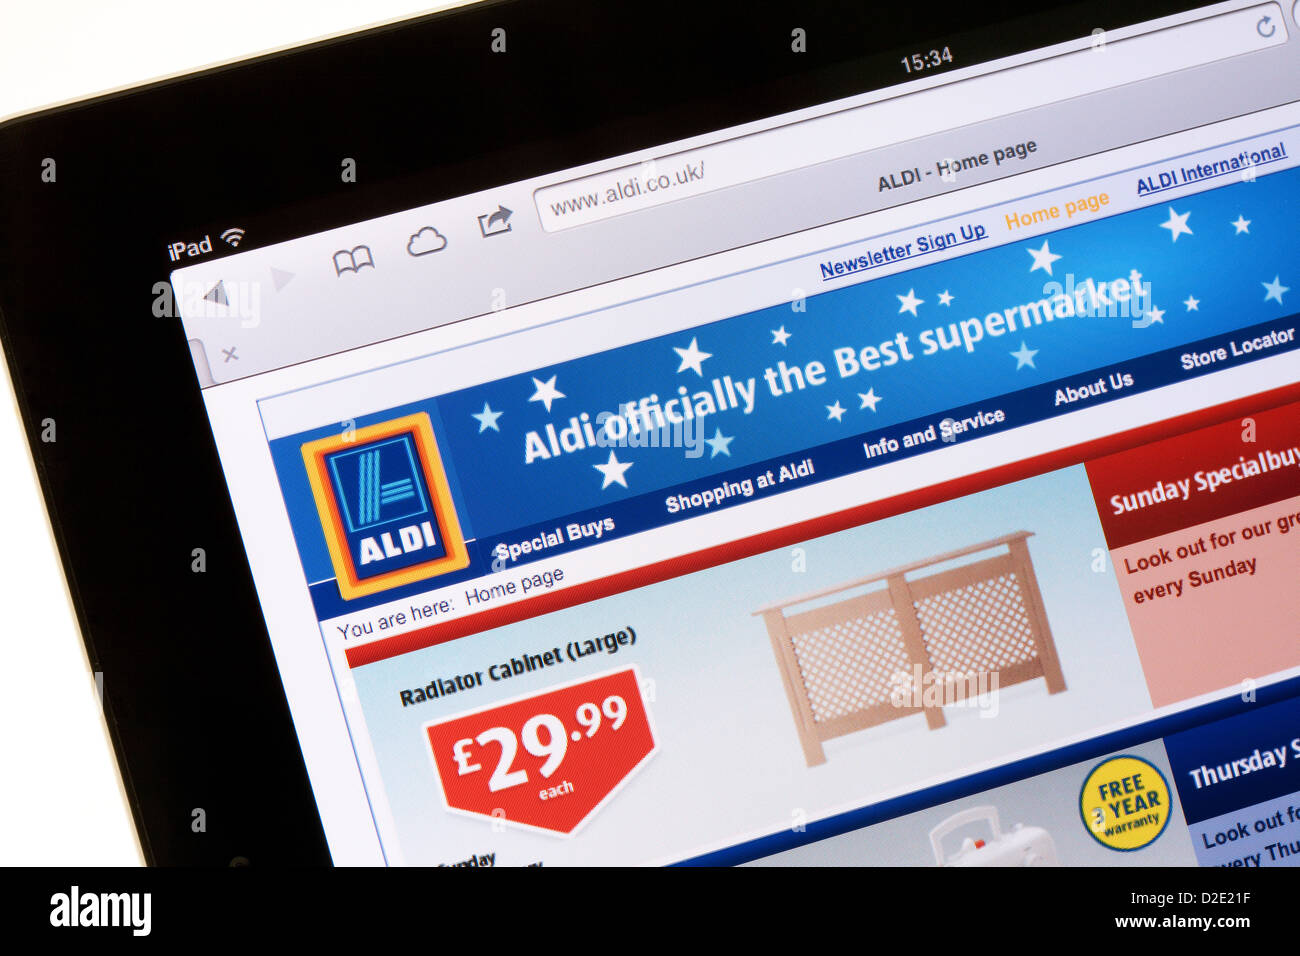 Aldi supermarket website for shopping on the internet; on an iPad, UK - Stock Image